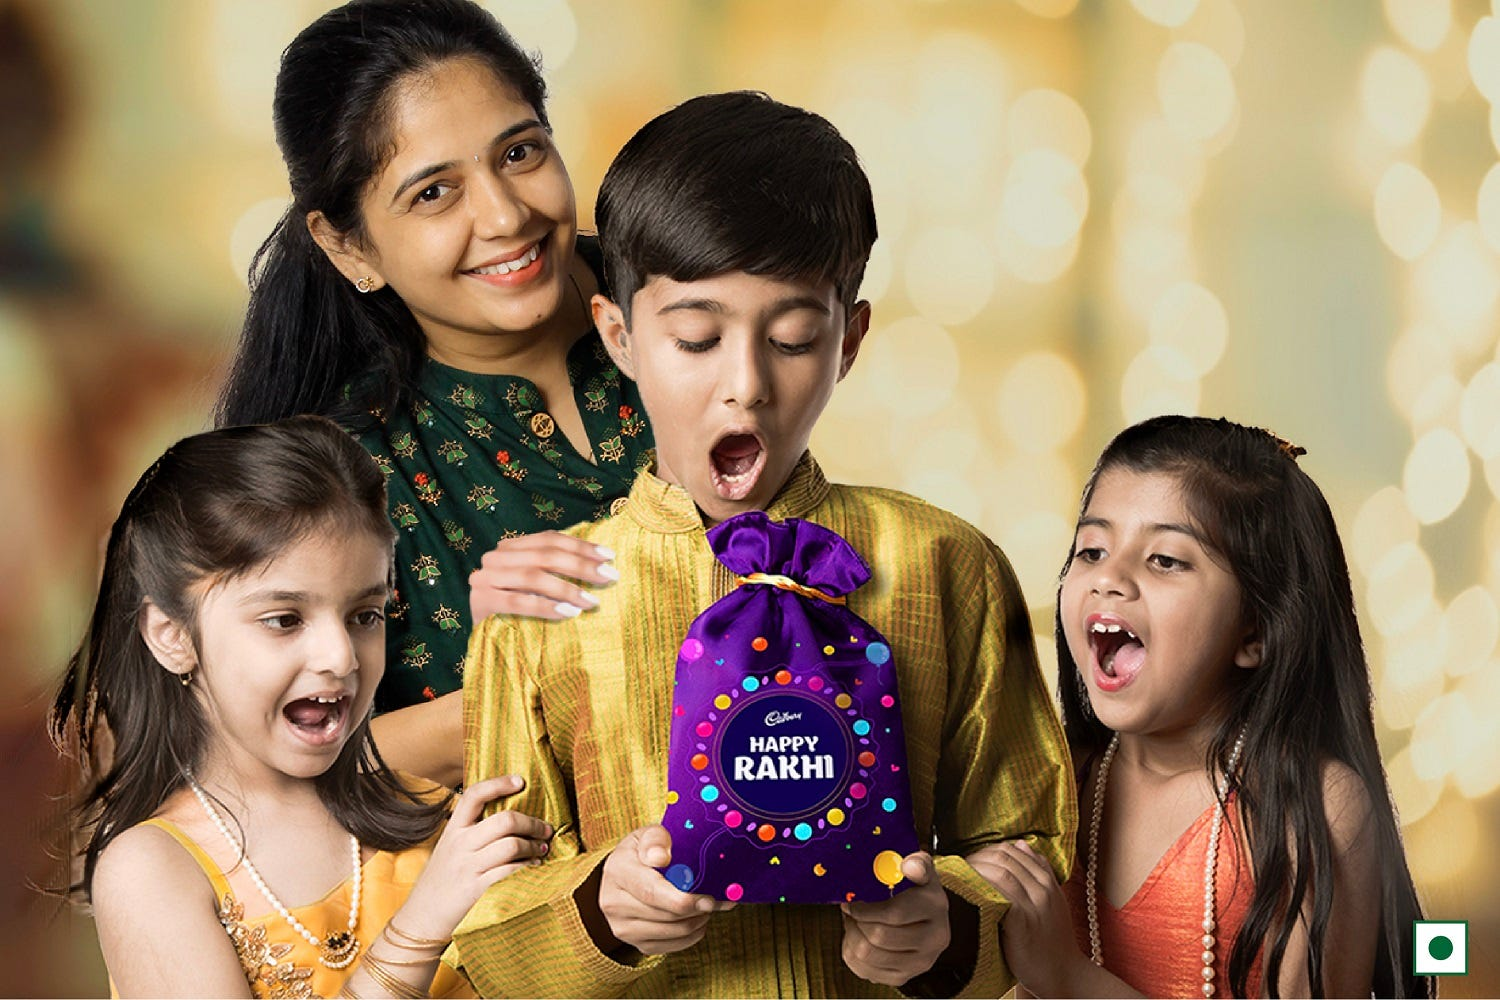 5 Chocolate Rakhi gift ideas for the sisters you bond with